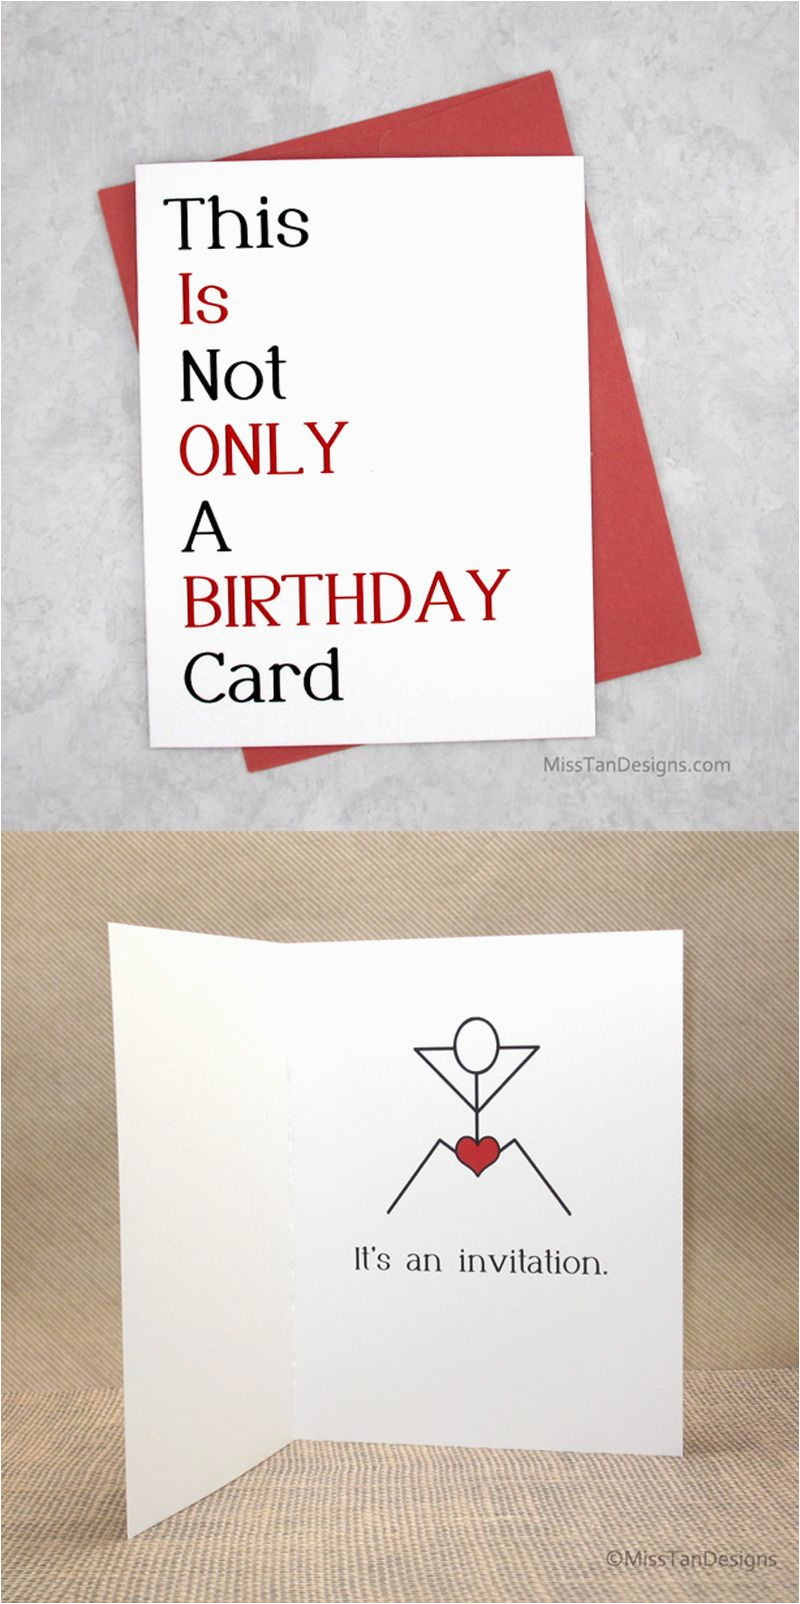 Birthday Card For Fiance Male Boyfriend Cards Not Only Funny Gift By